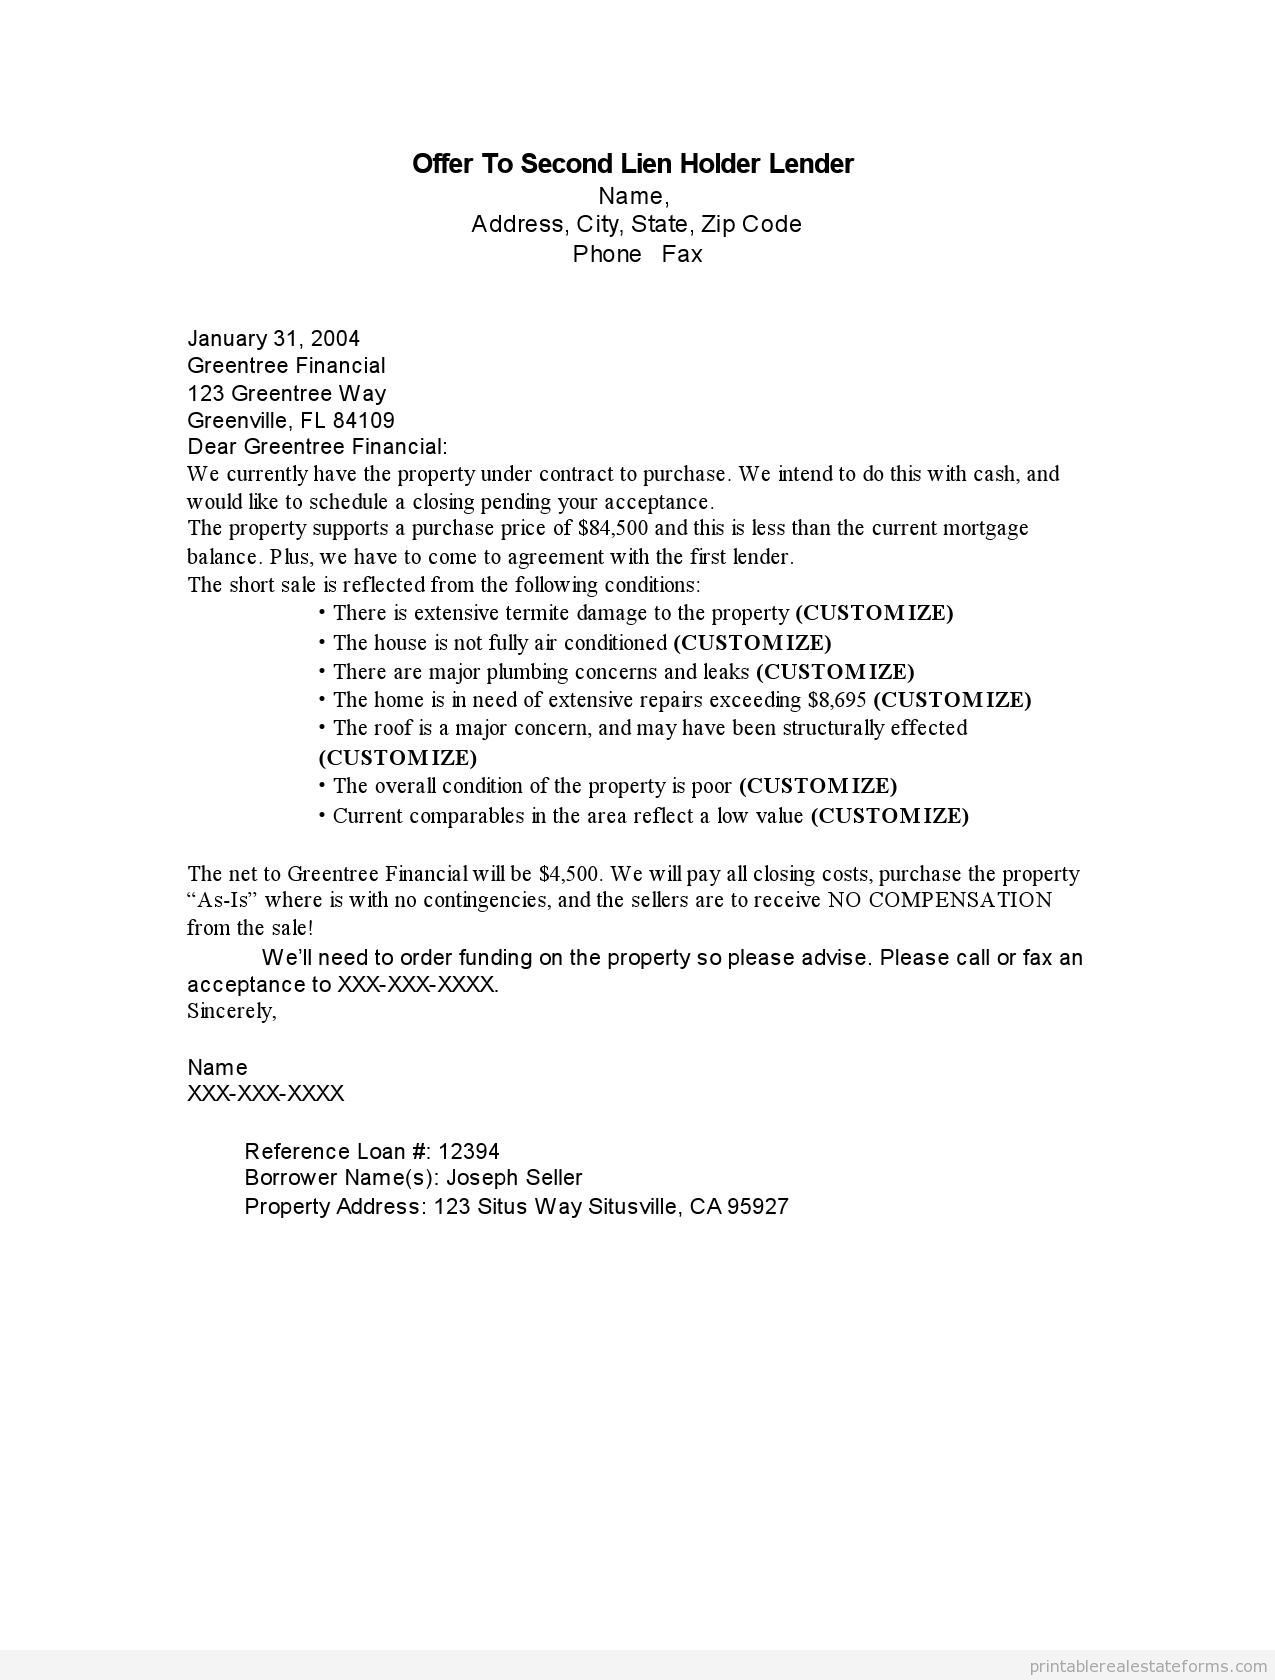 Mechanics Lien Letter Template - Letter Intent to Lien Sample Printable Fer Second Holder Lender